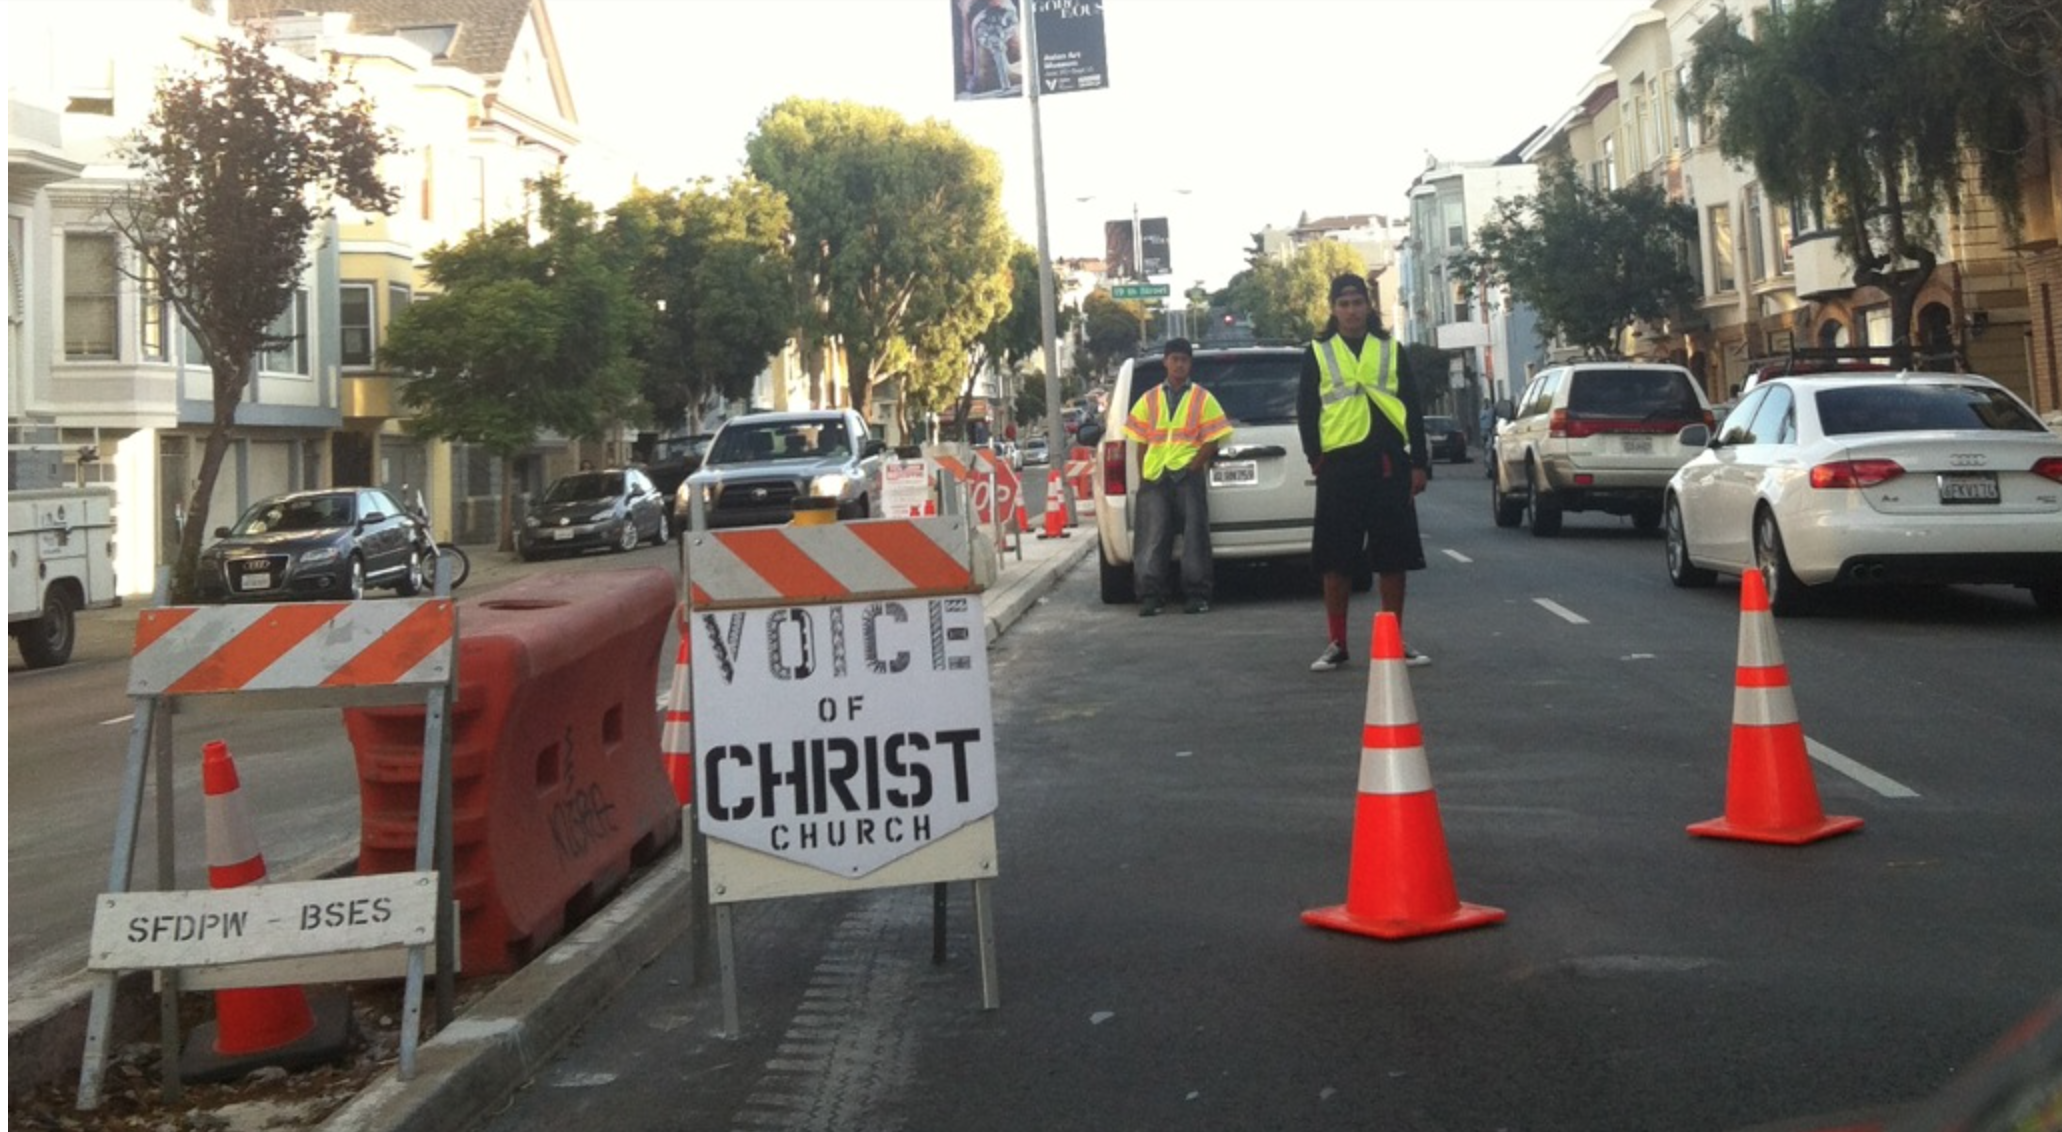 Dear Scott and Ed: About Sunday Parking for Religious Orgs